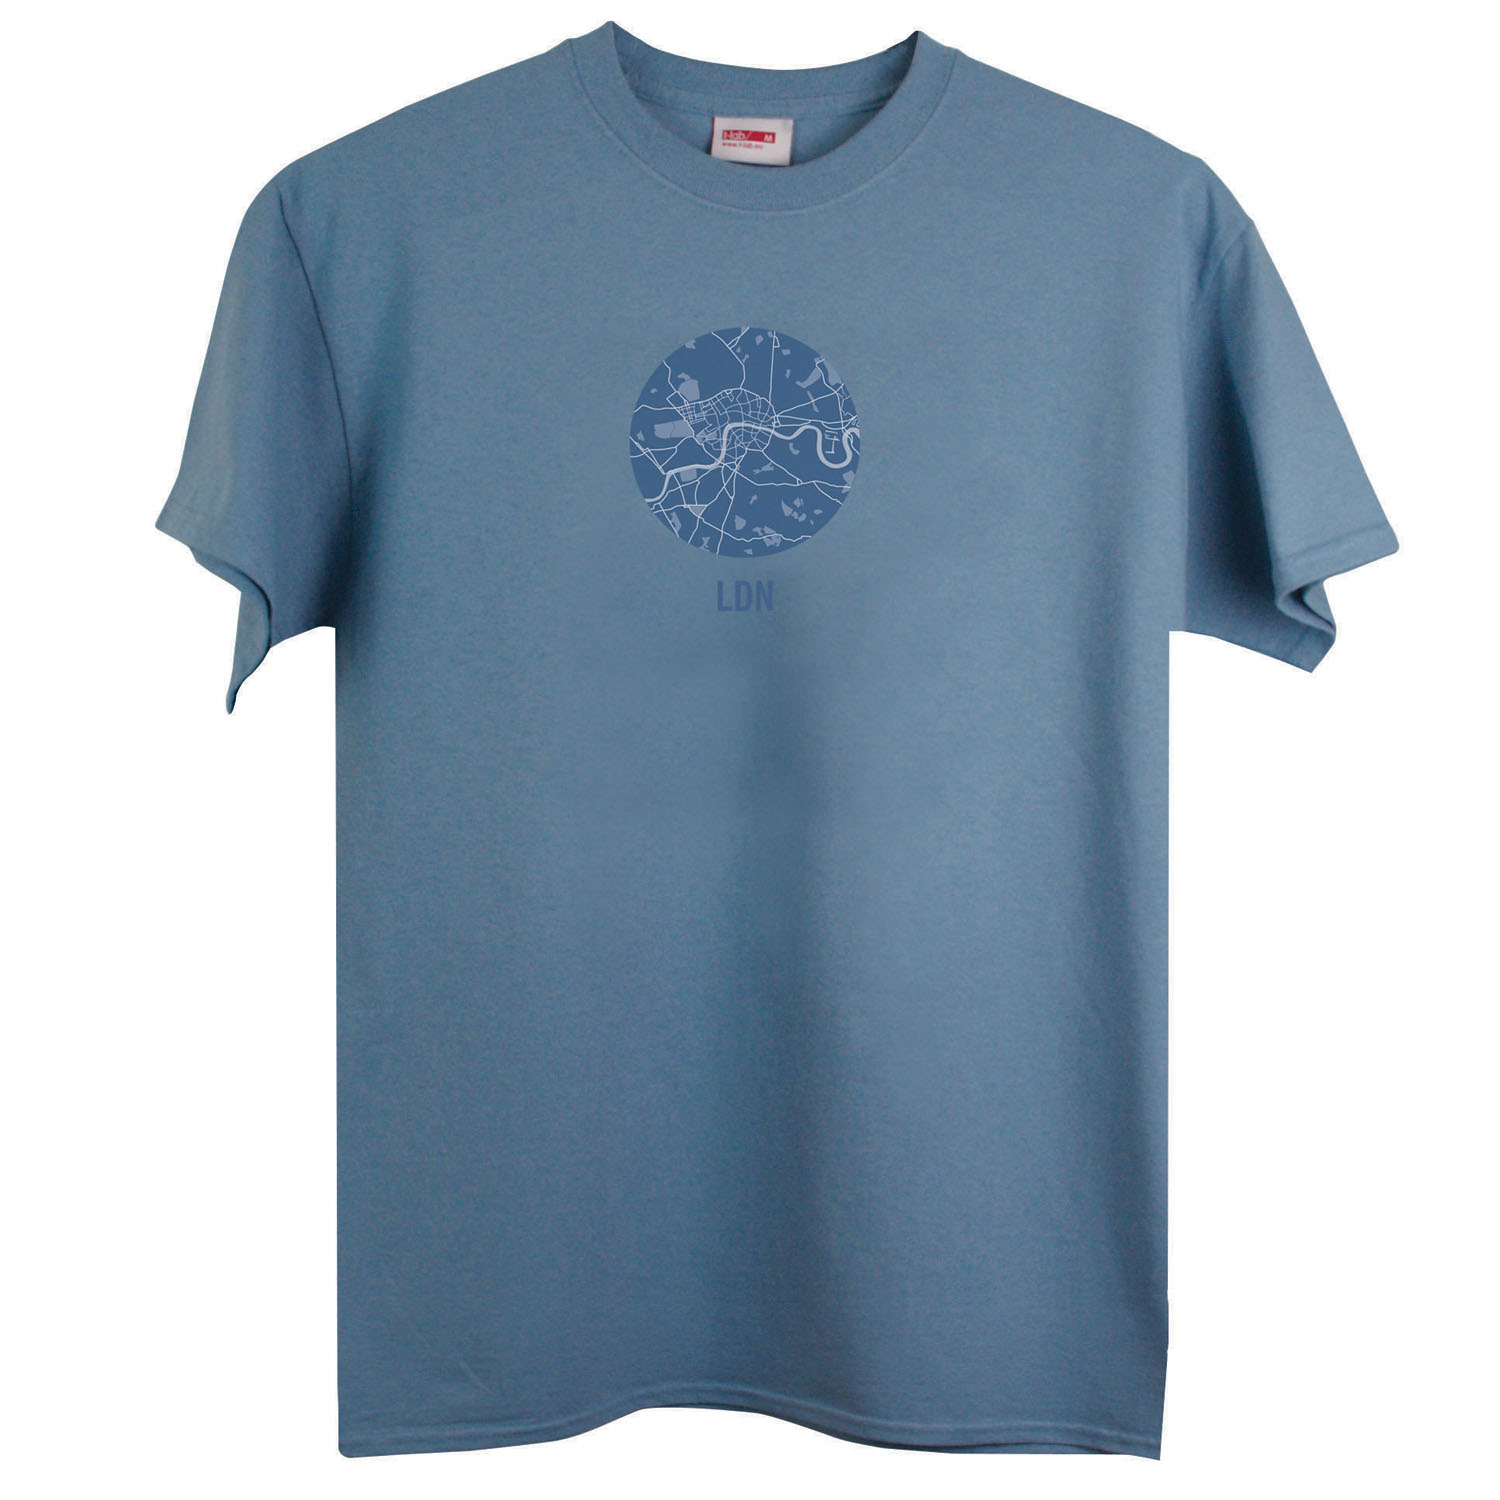 T-lab-LDN-mens-t-shirt-stone-blue-full